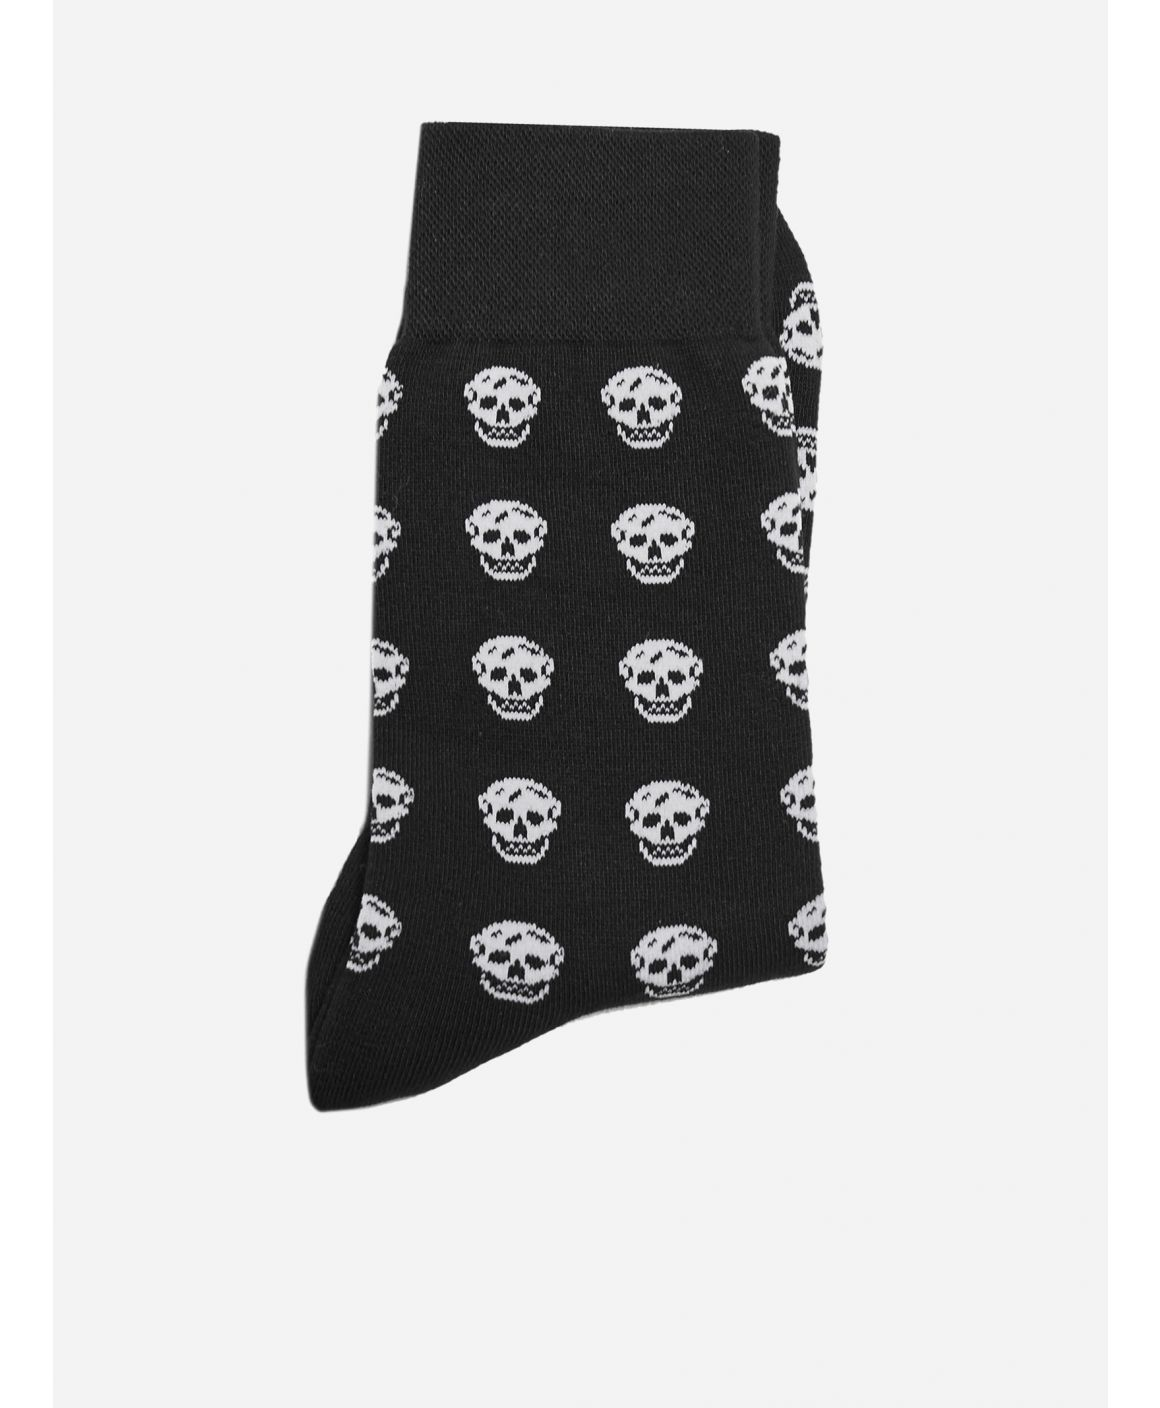 Skull-all-over cotton socks